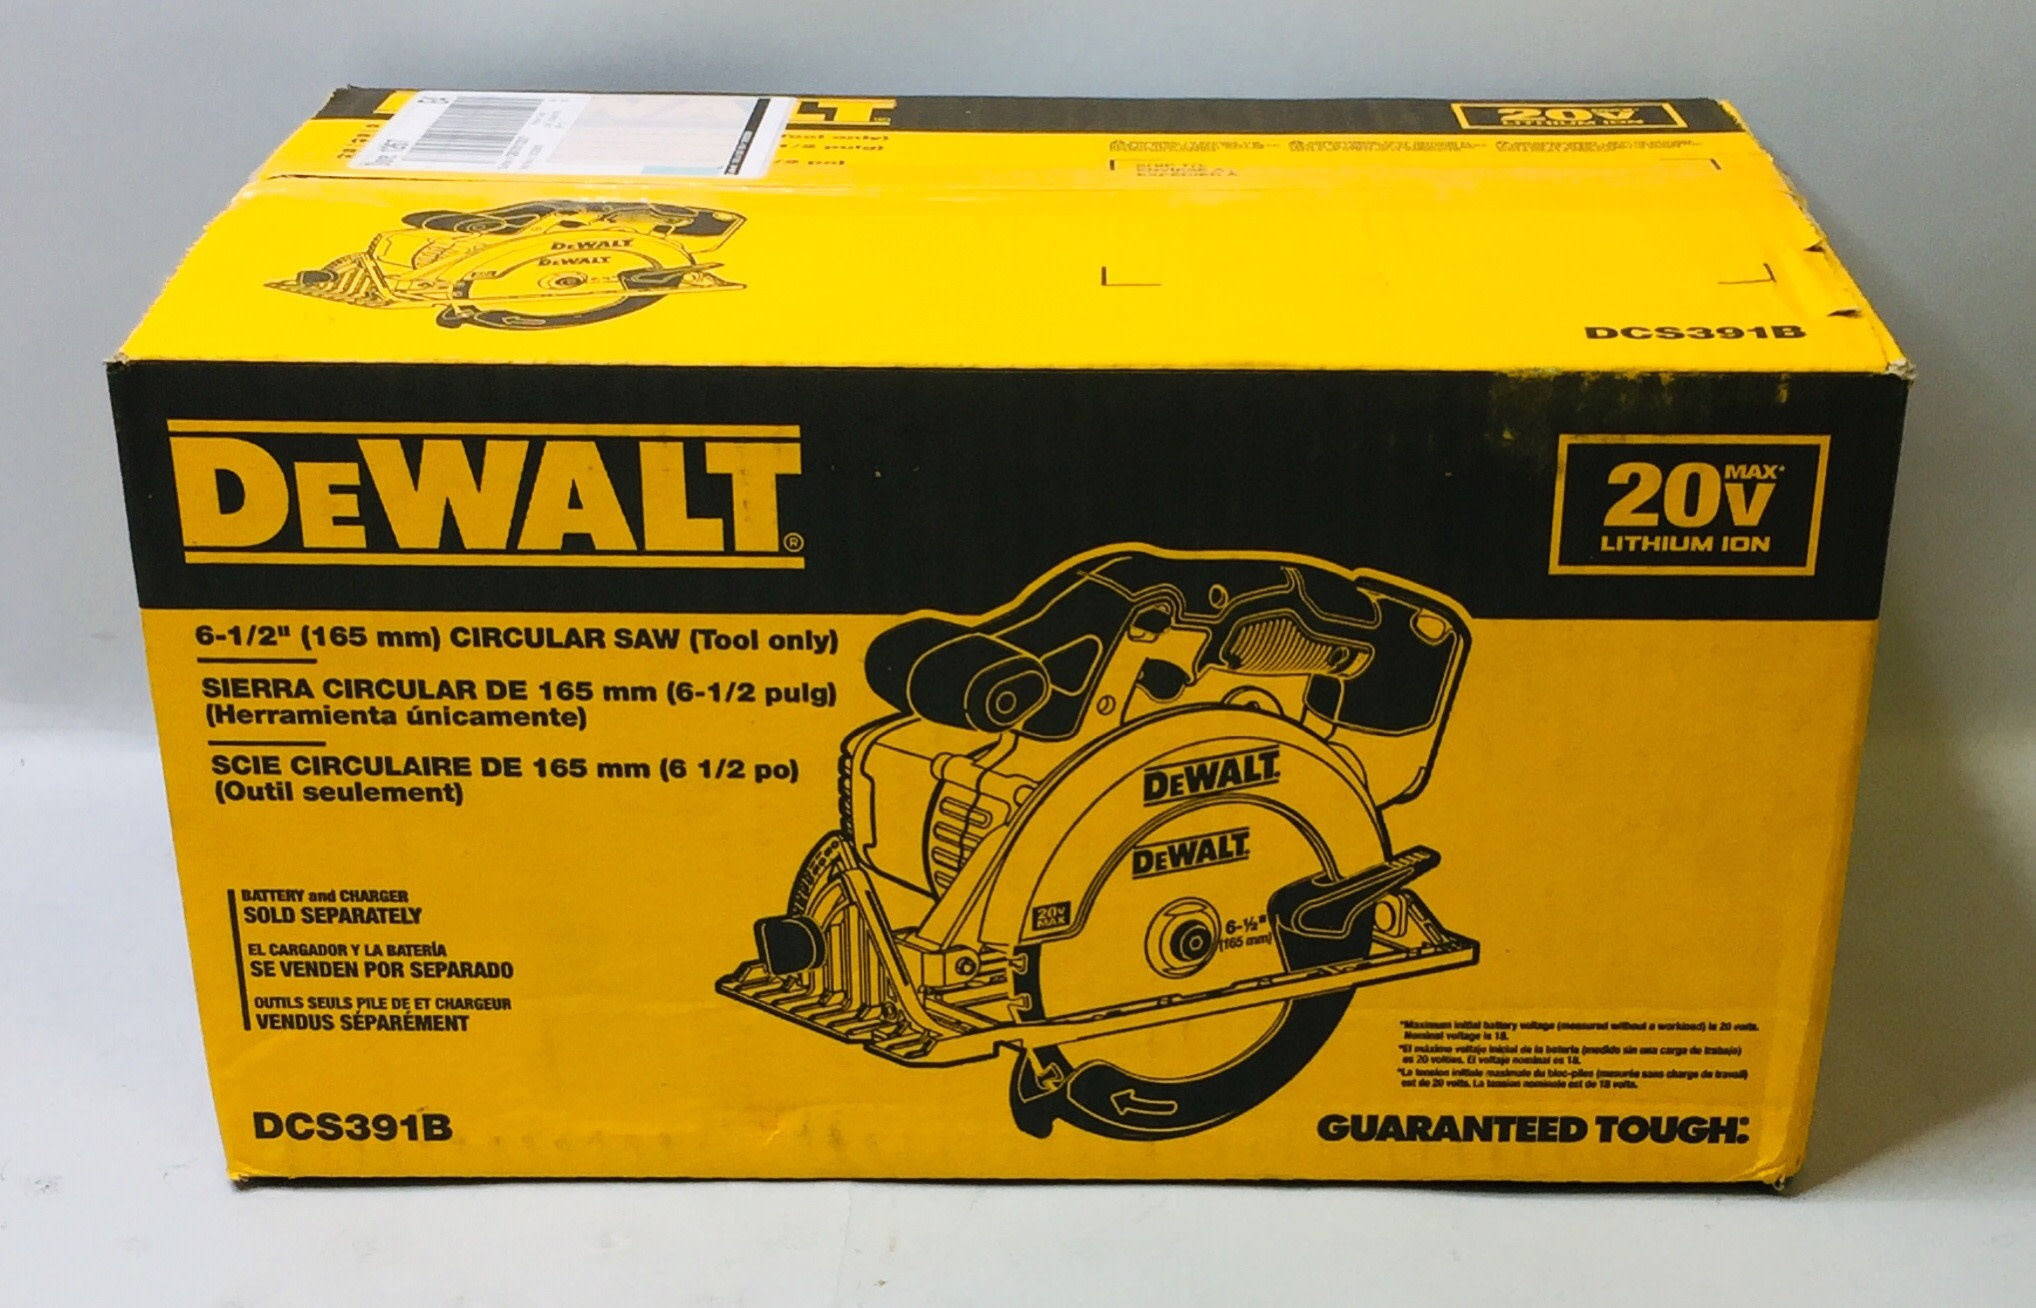 "NEW Dewalt 6-1/2"" Circular Saw (Tool Only) - DCS391B"